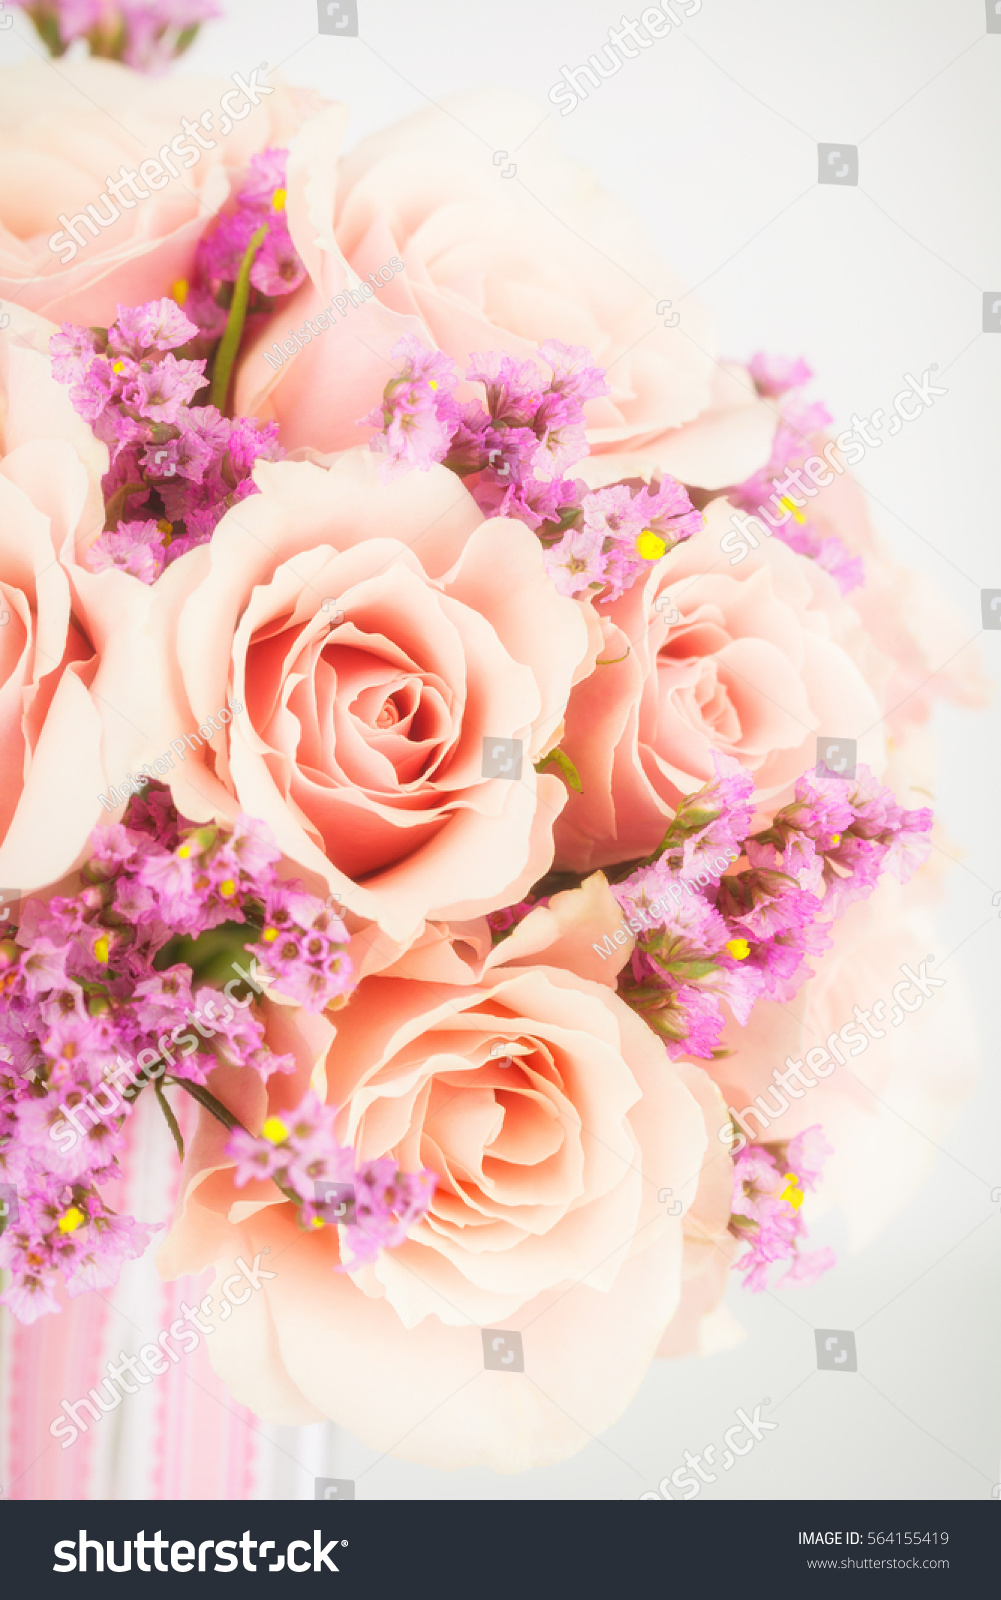 Close View Wedding Bouquet Pink Statice Stock Photo 564155419 ...